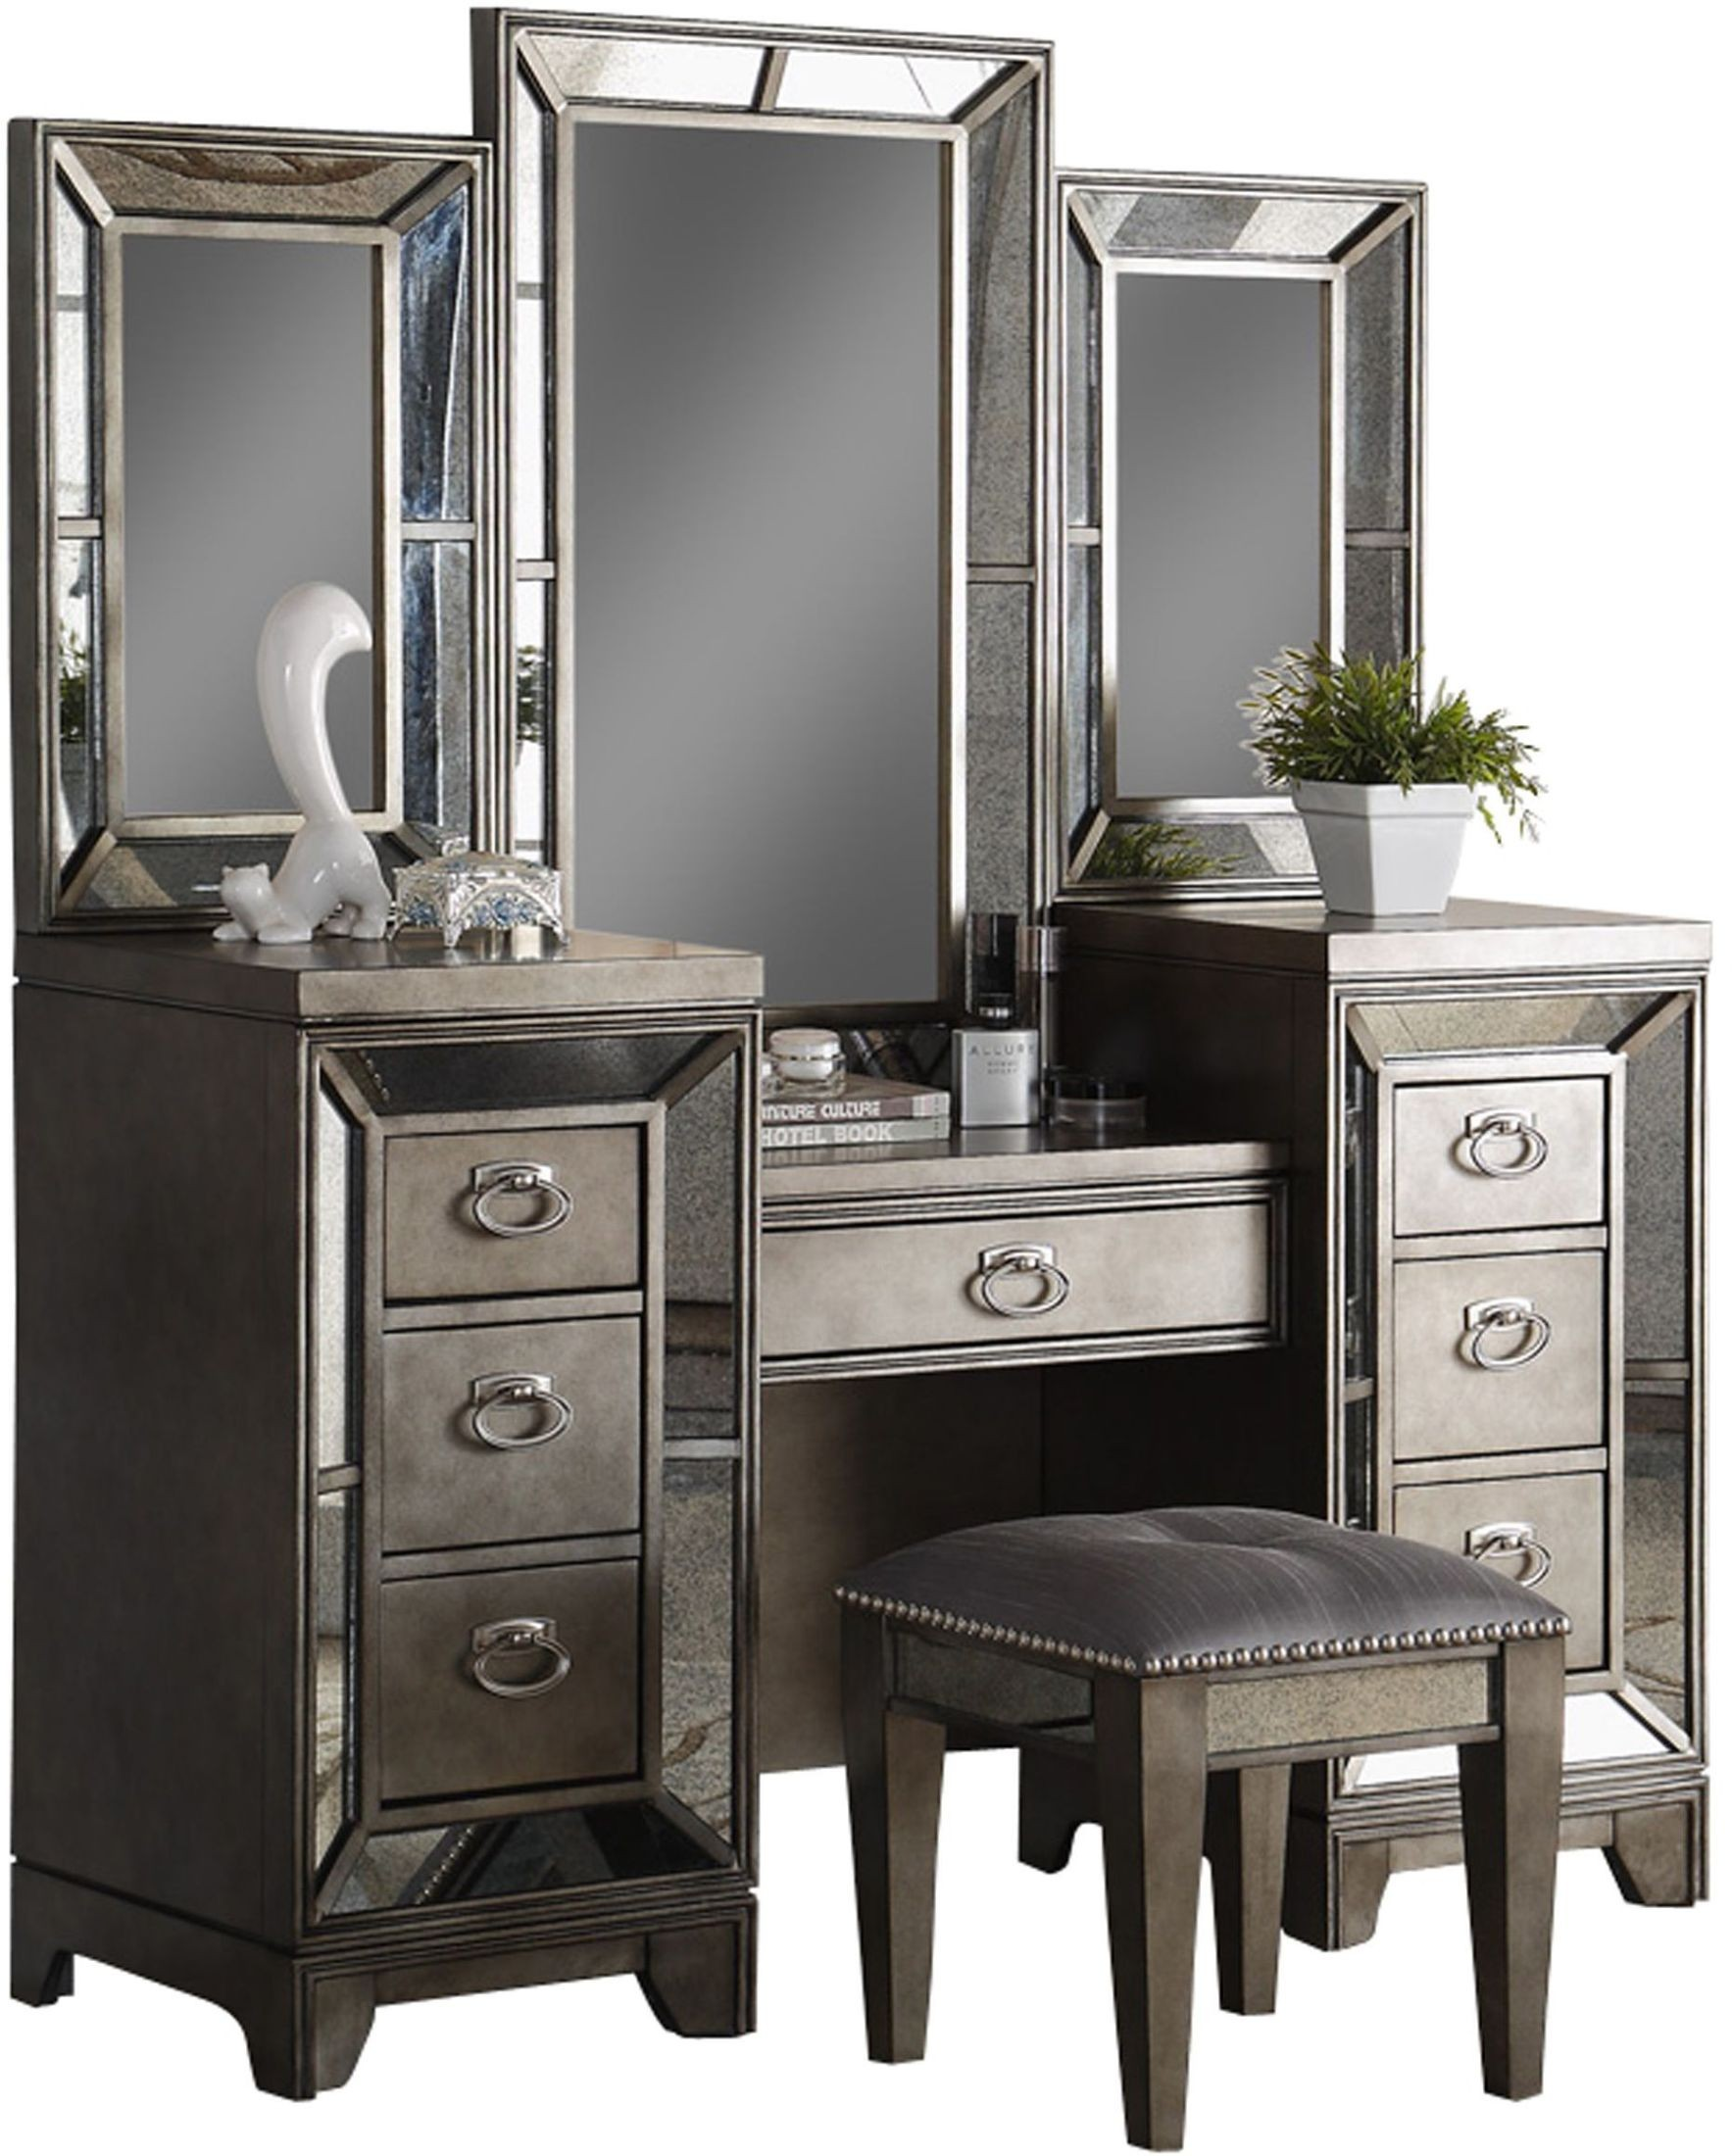 Superbe Lenox Platinum Painted Vanity Desk With Mirror From Avalon Furniture |  Coleman Furniture